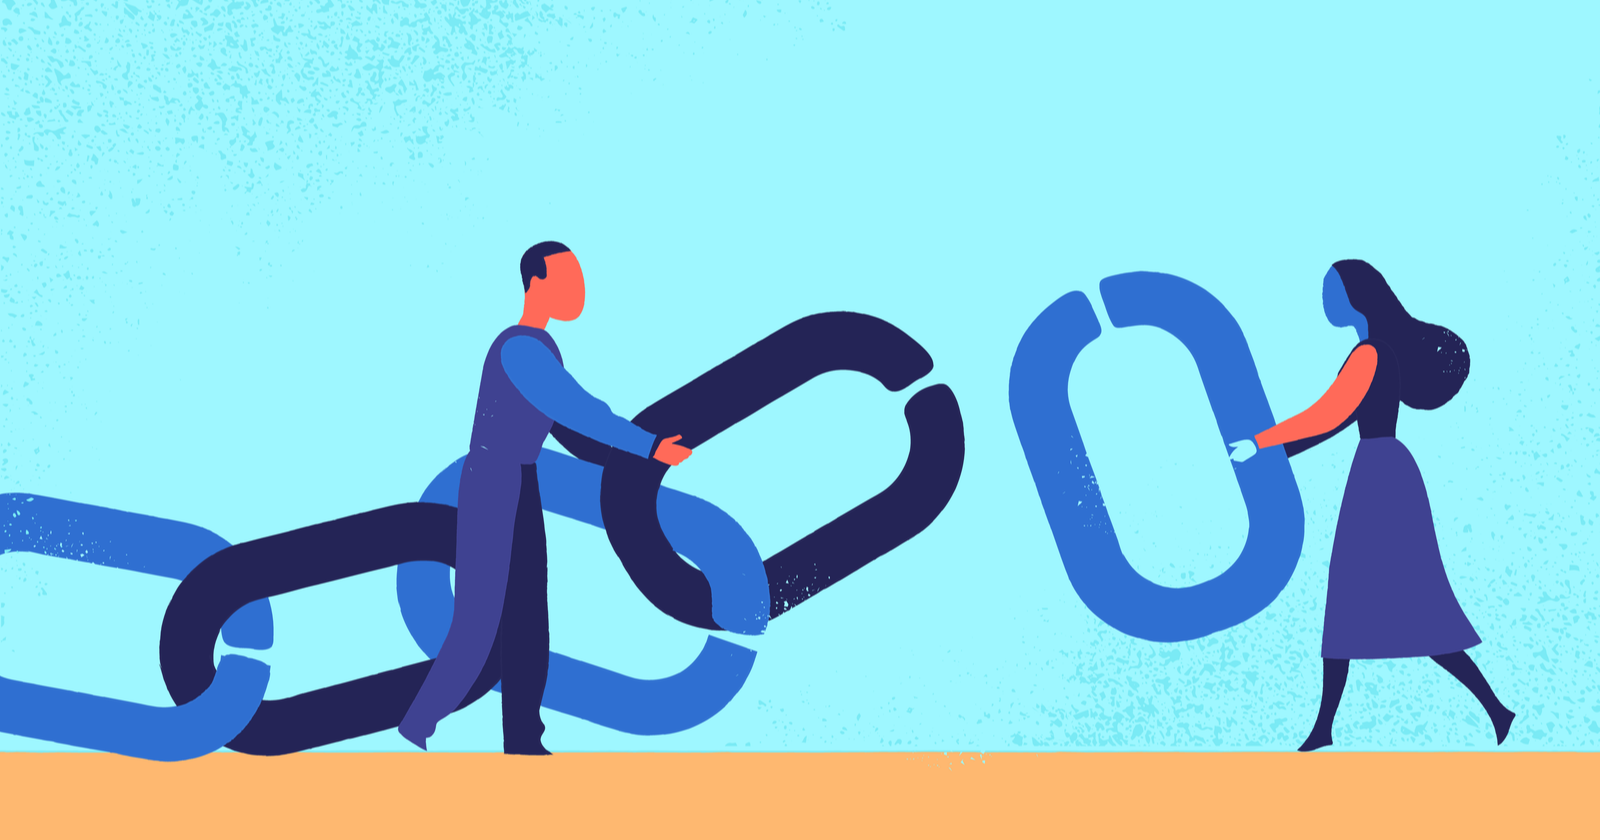 7 Creative Ways to Earn or Build Links to Your Site via @sejournal, @JRiddall